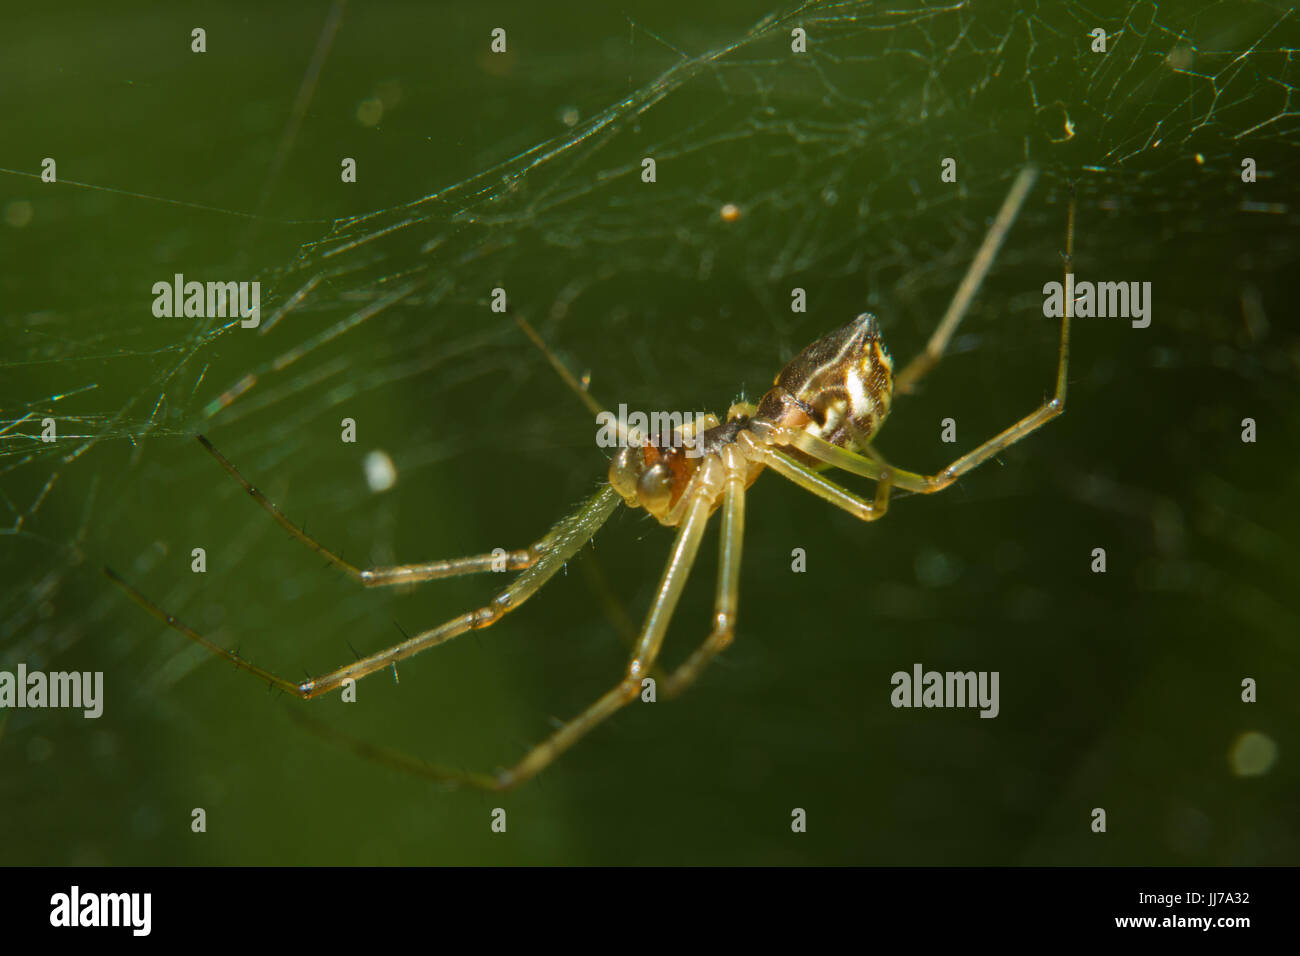 Small spider, a Linyphia species, in a web against a green background Stock Photo